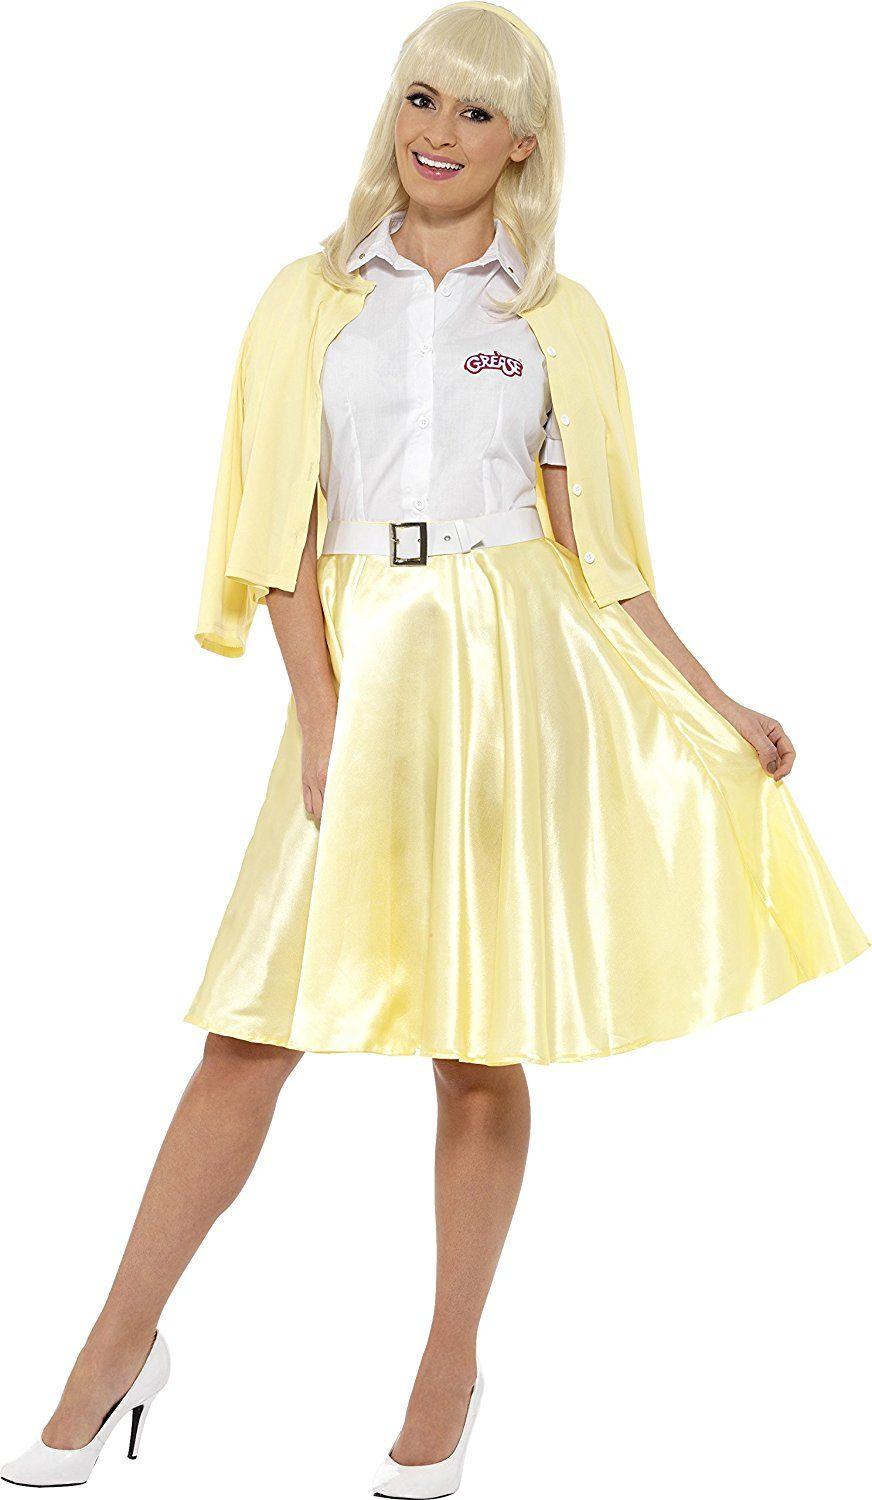 0337fb1b1a Fun 1950s Costumes- Poodle Skirts, Monroe, Grease, Pin Up in 2019 ...